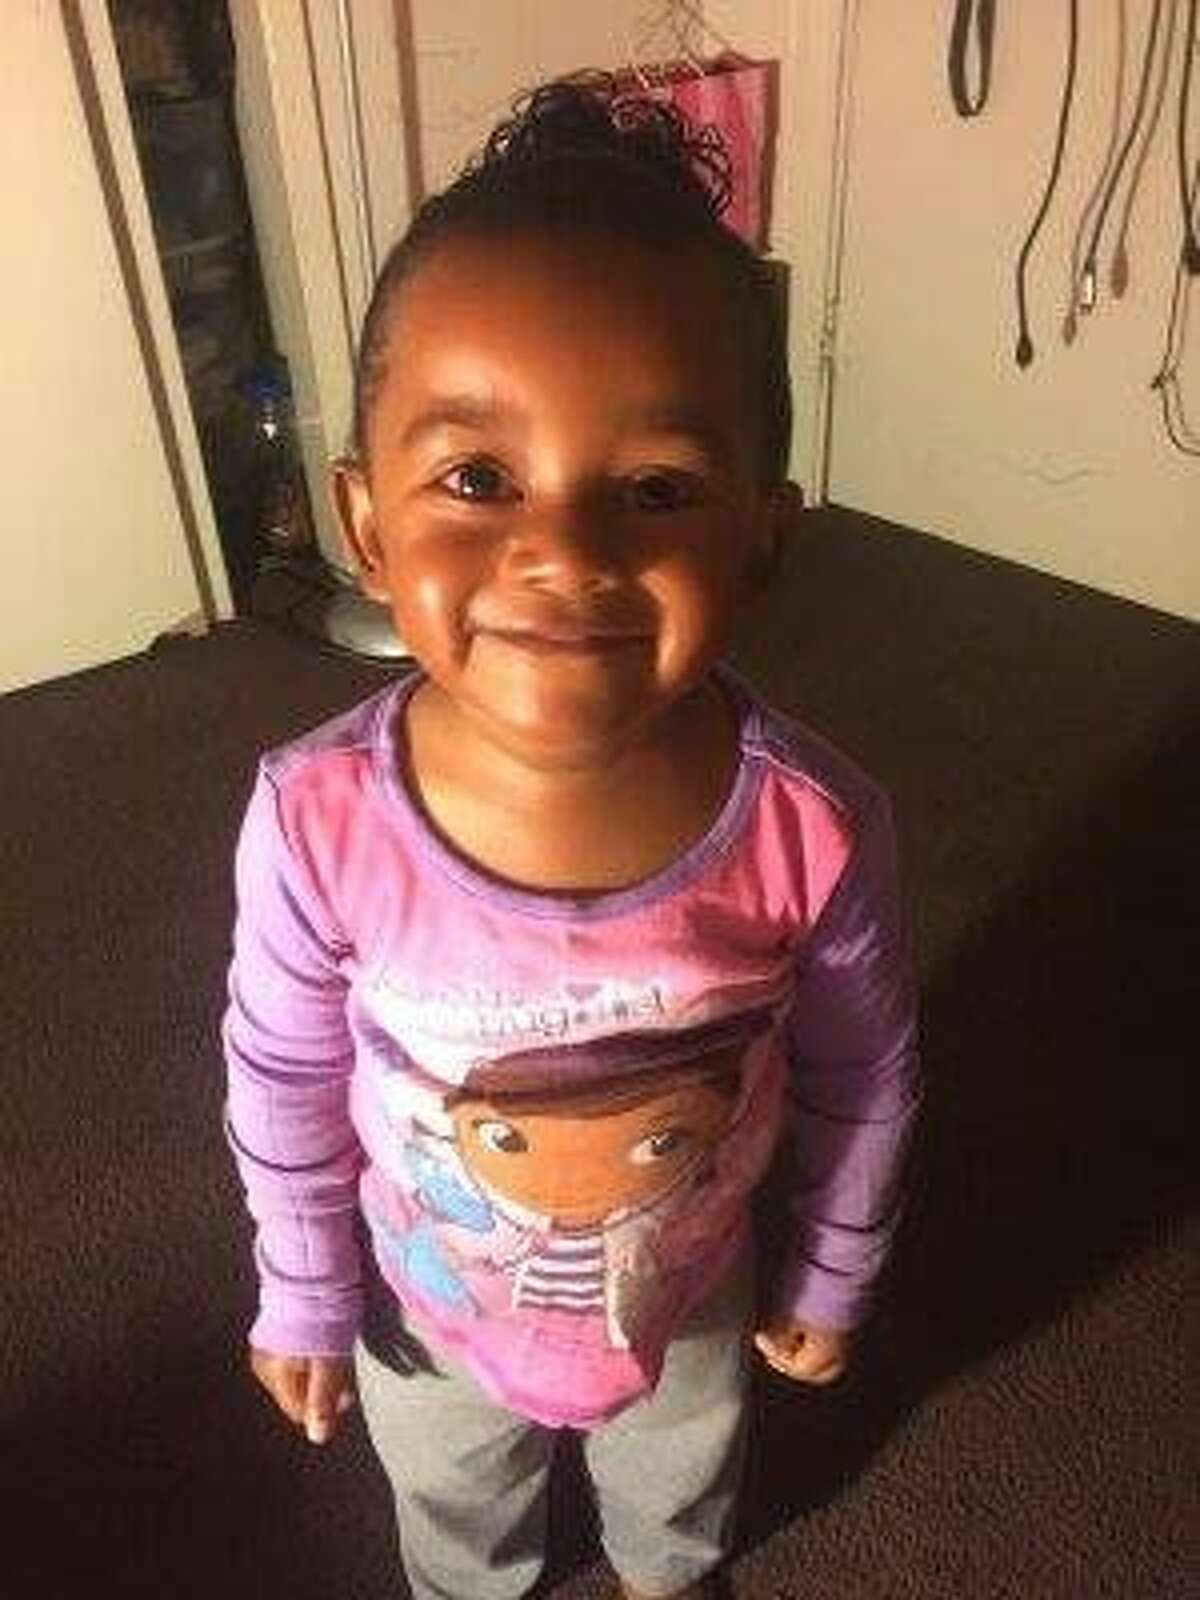 Arianna Fitts, 2, went missing in February 2016. A few months later, the body of her mother, 32-year-old Nicole Fitts, was found near a park.